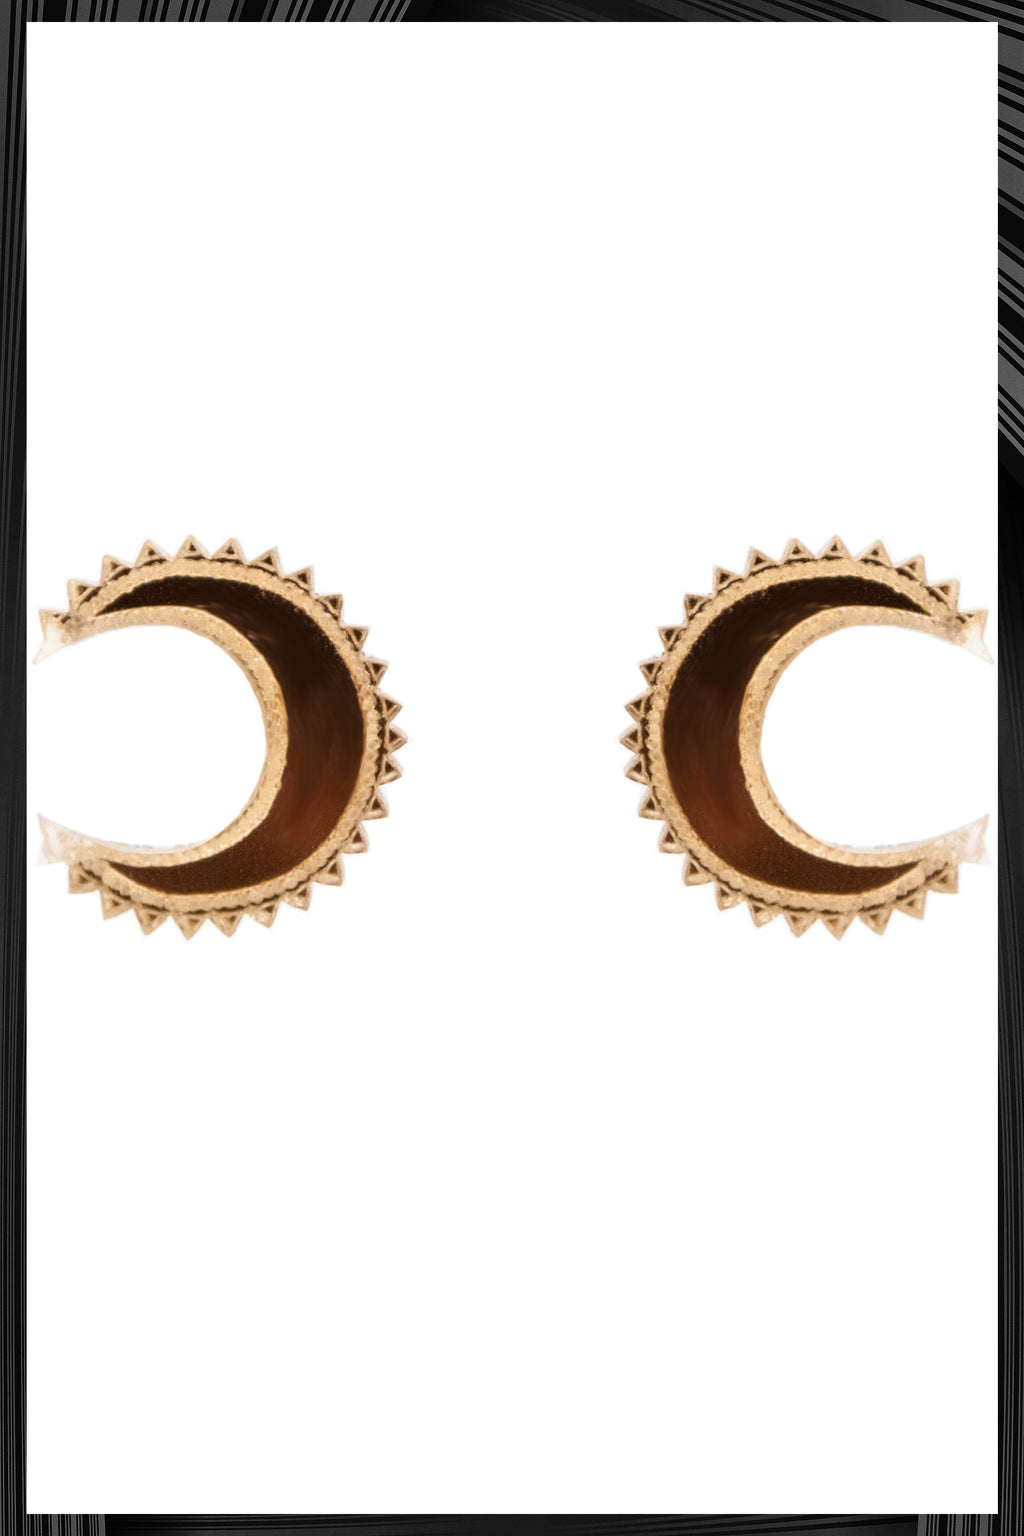 Chand Studs Small  | Free Delivery - 2-3 Week Shipping